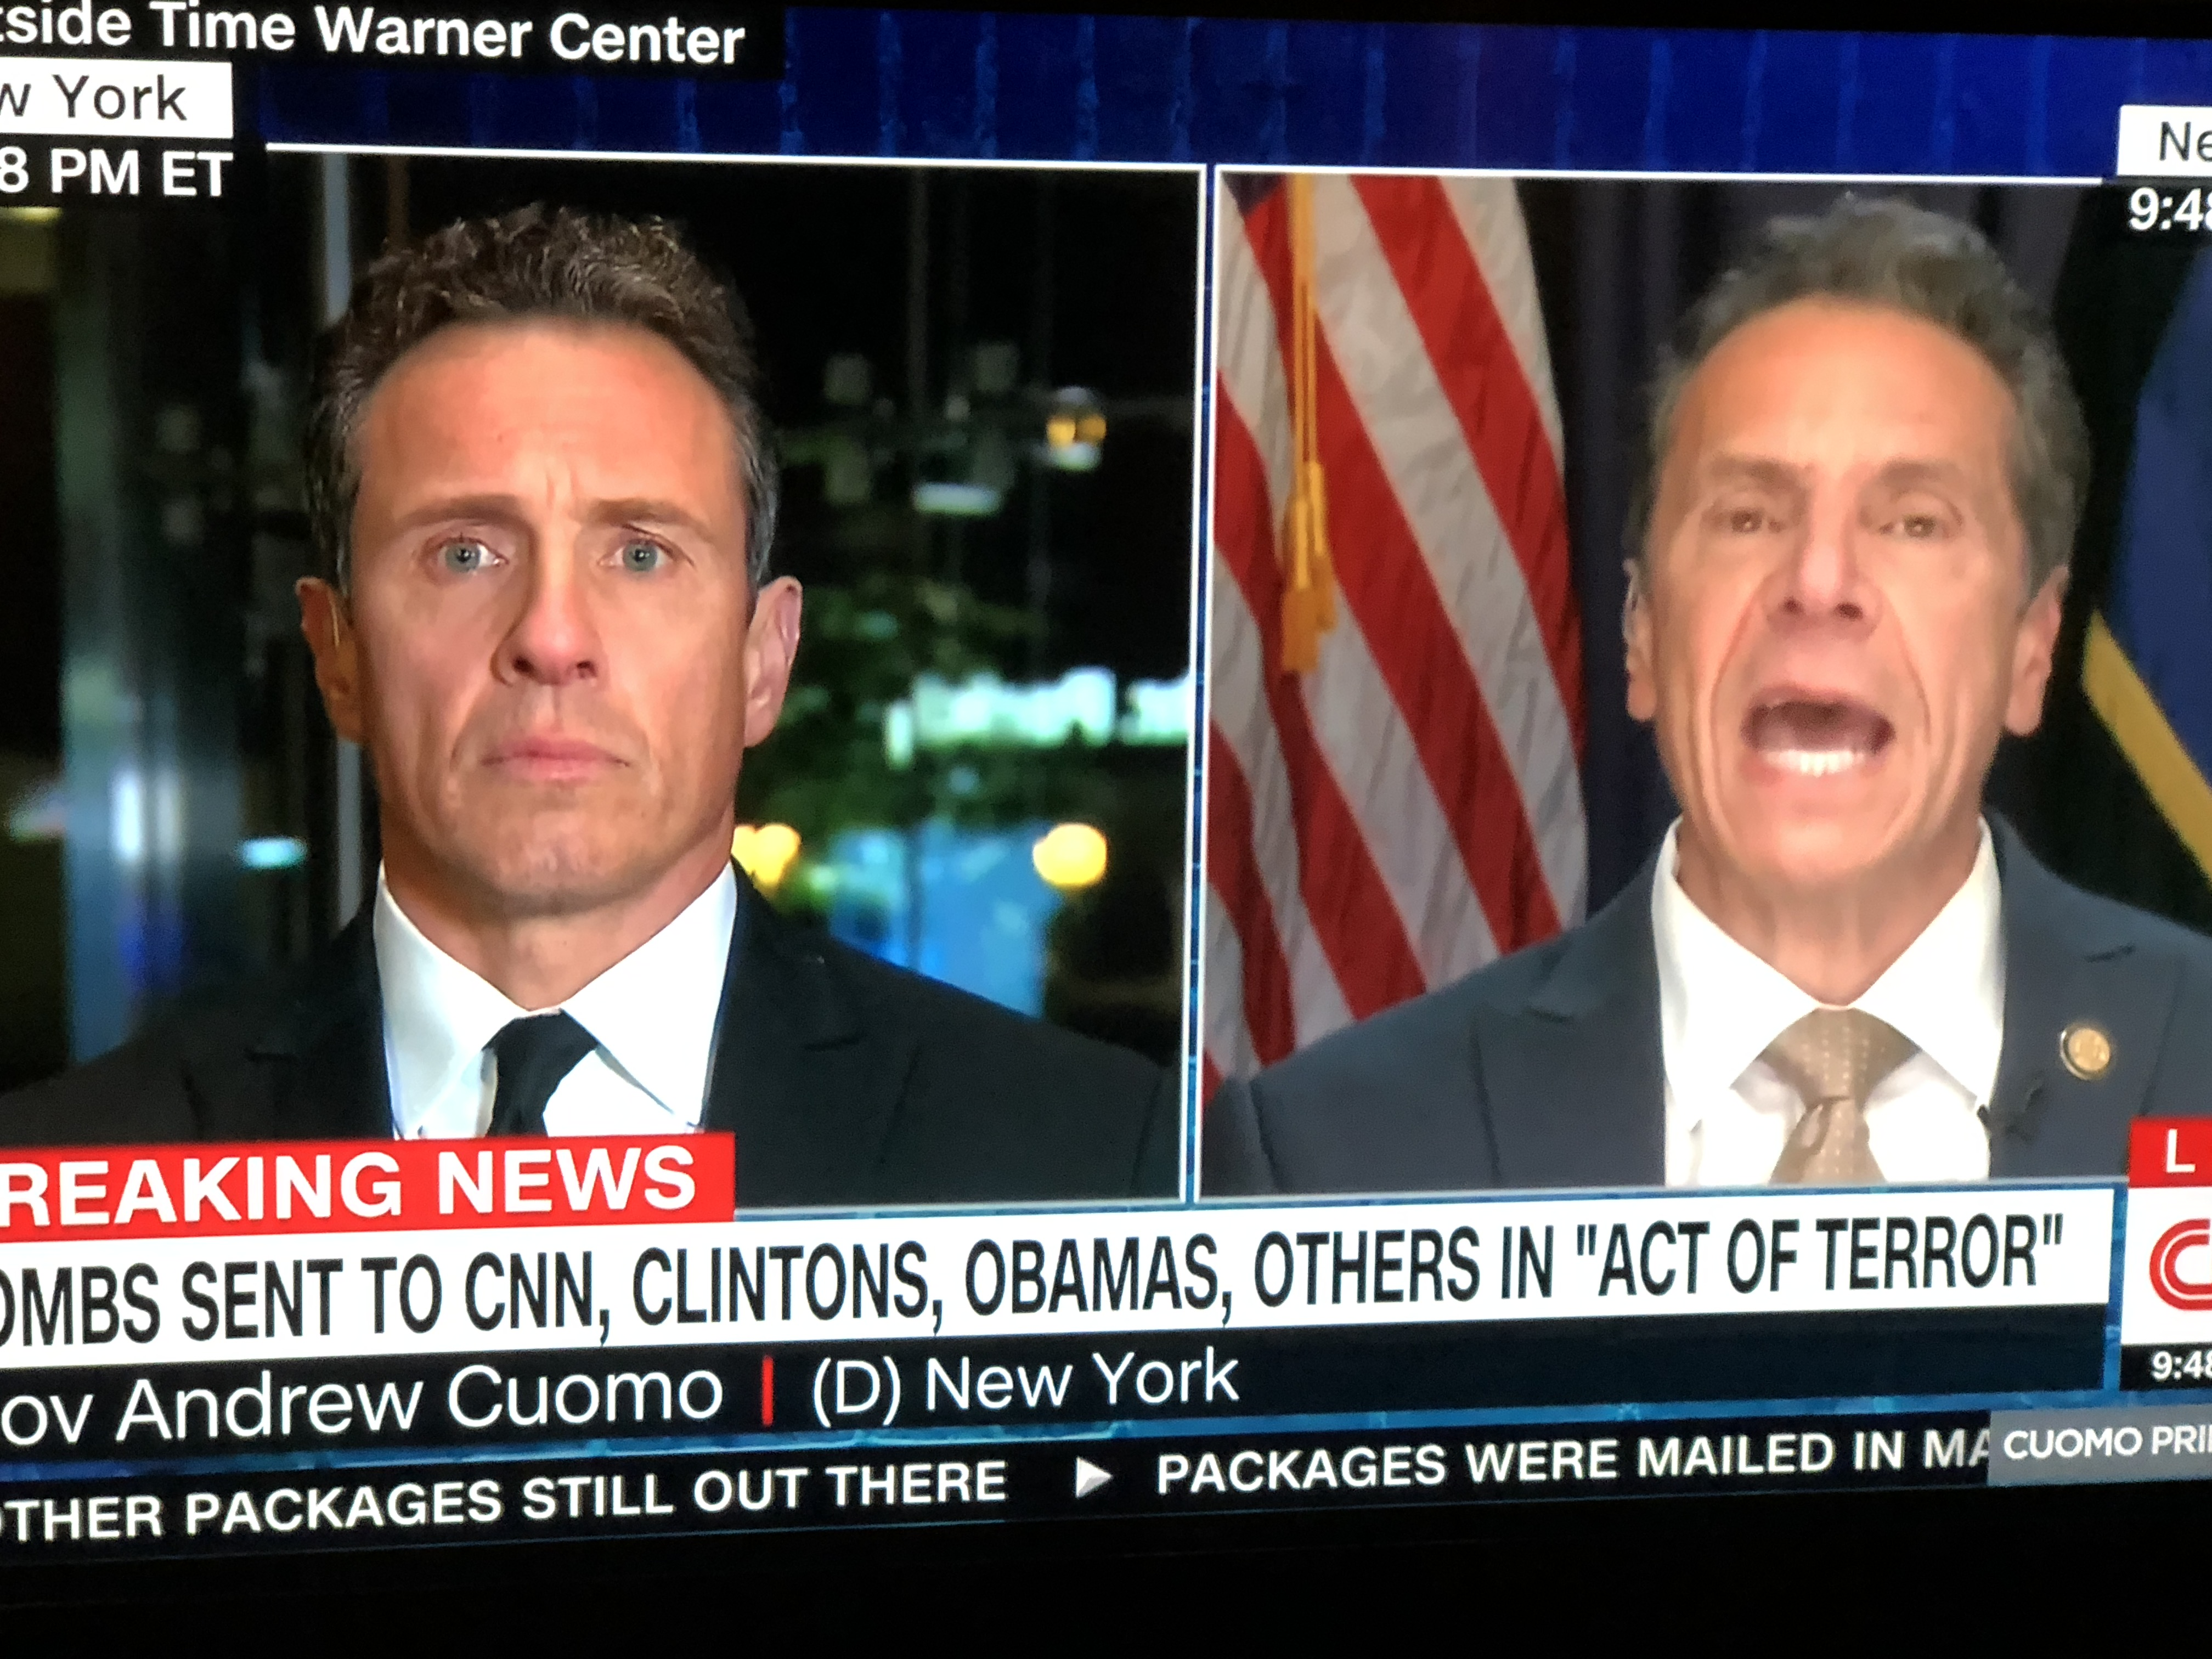 Screenshot/CNN.